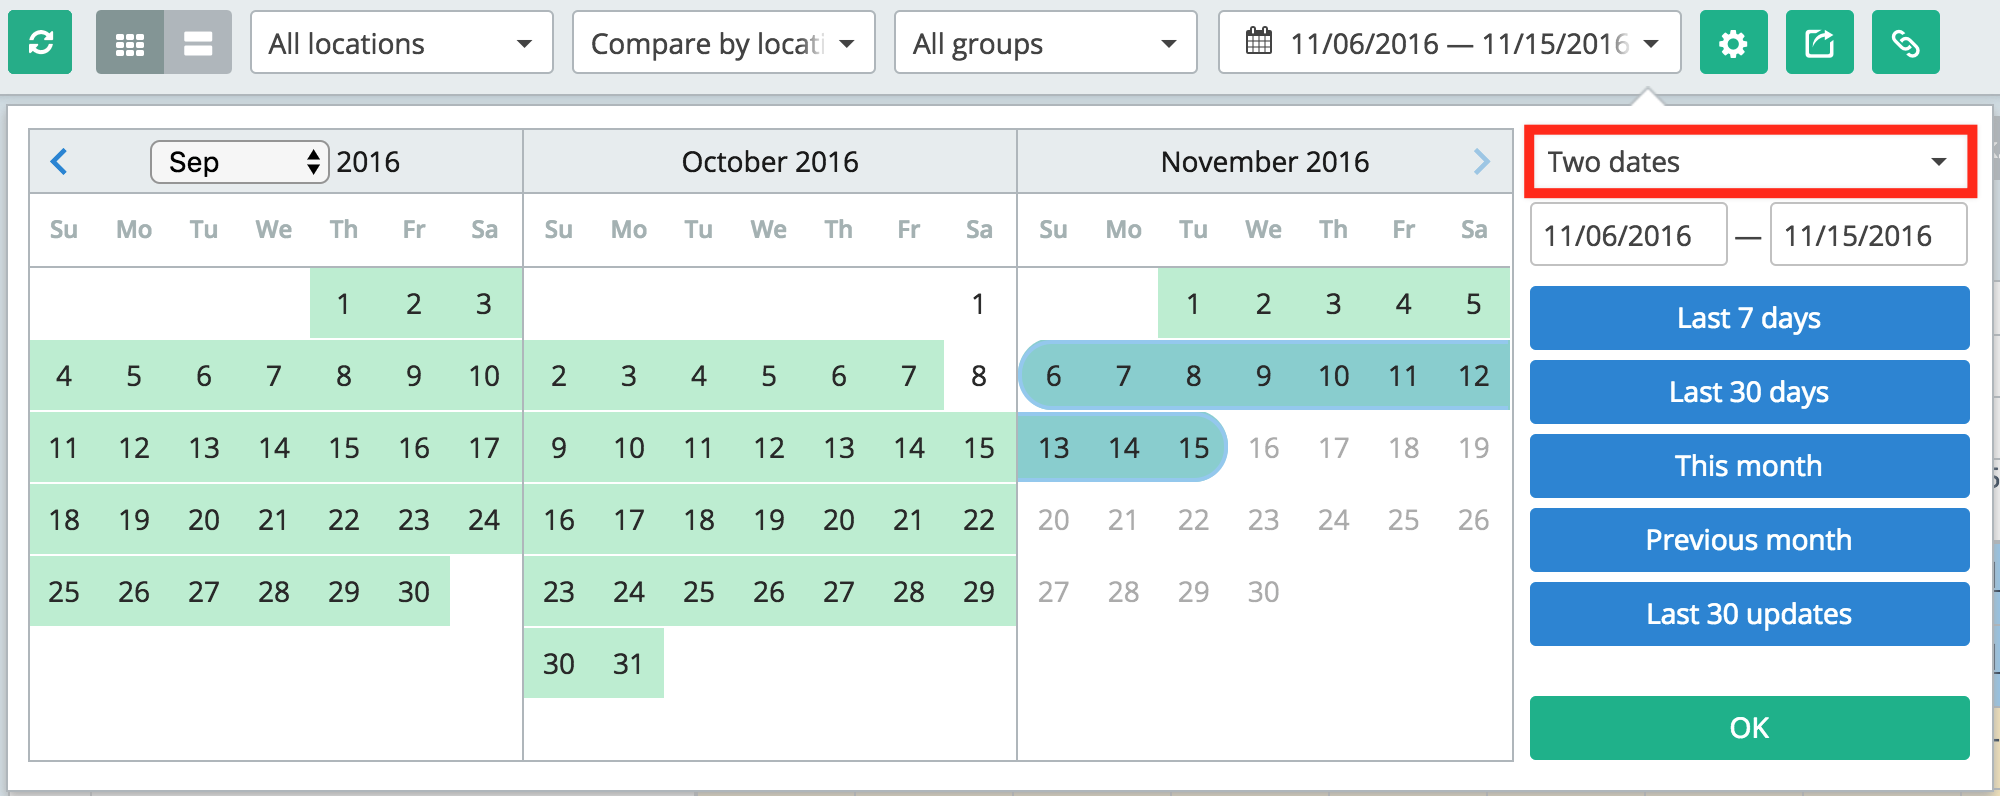 Two-dates mode picked in the Calendar